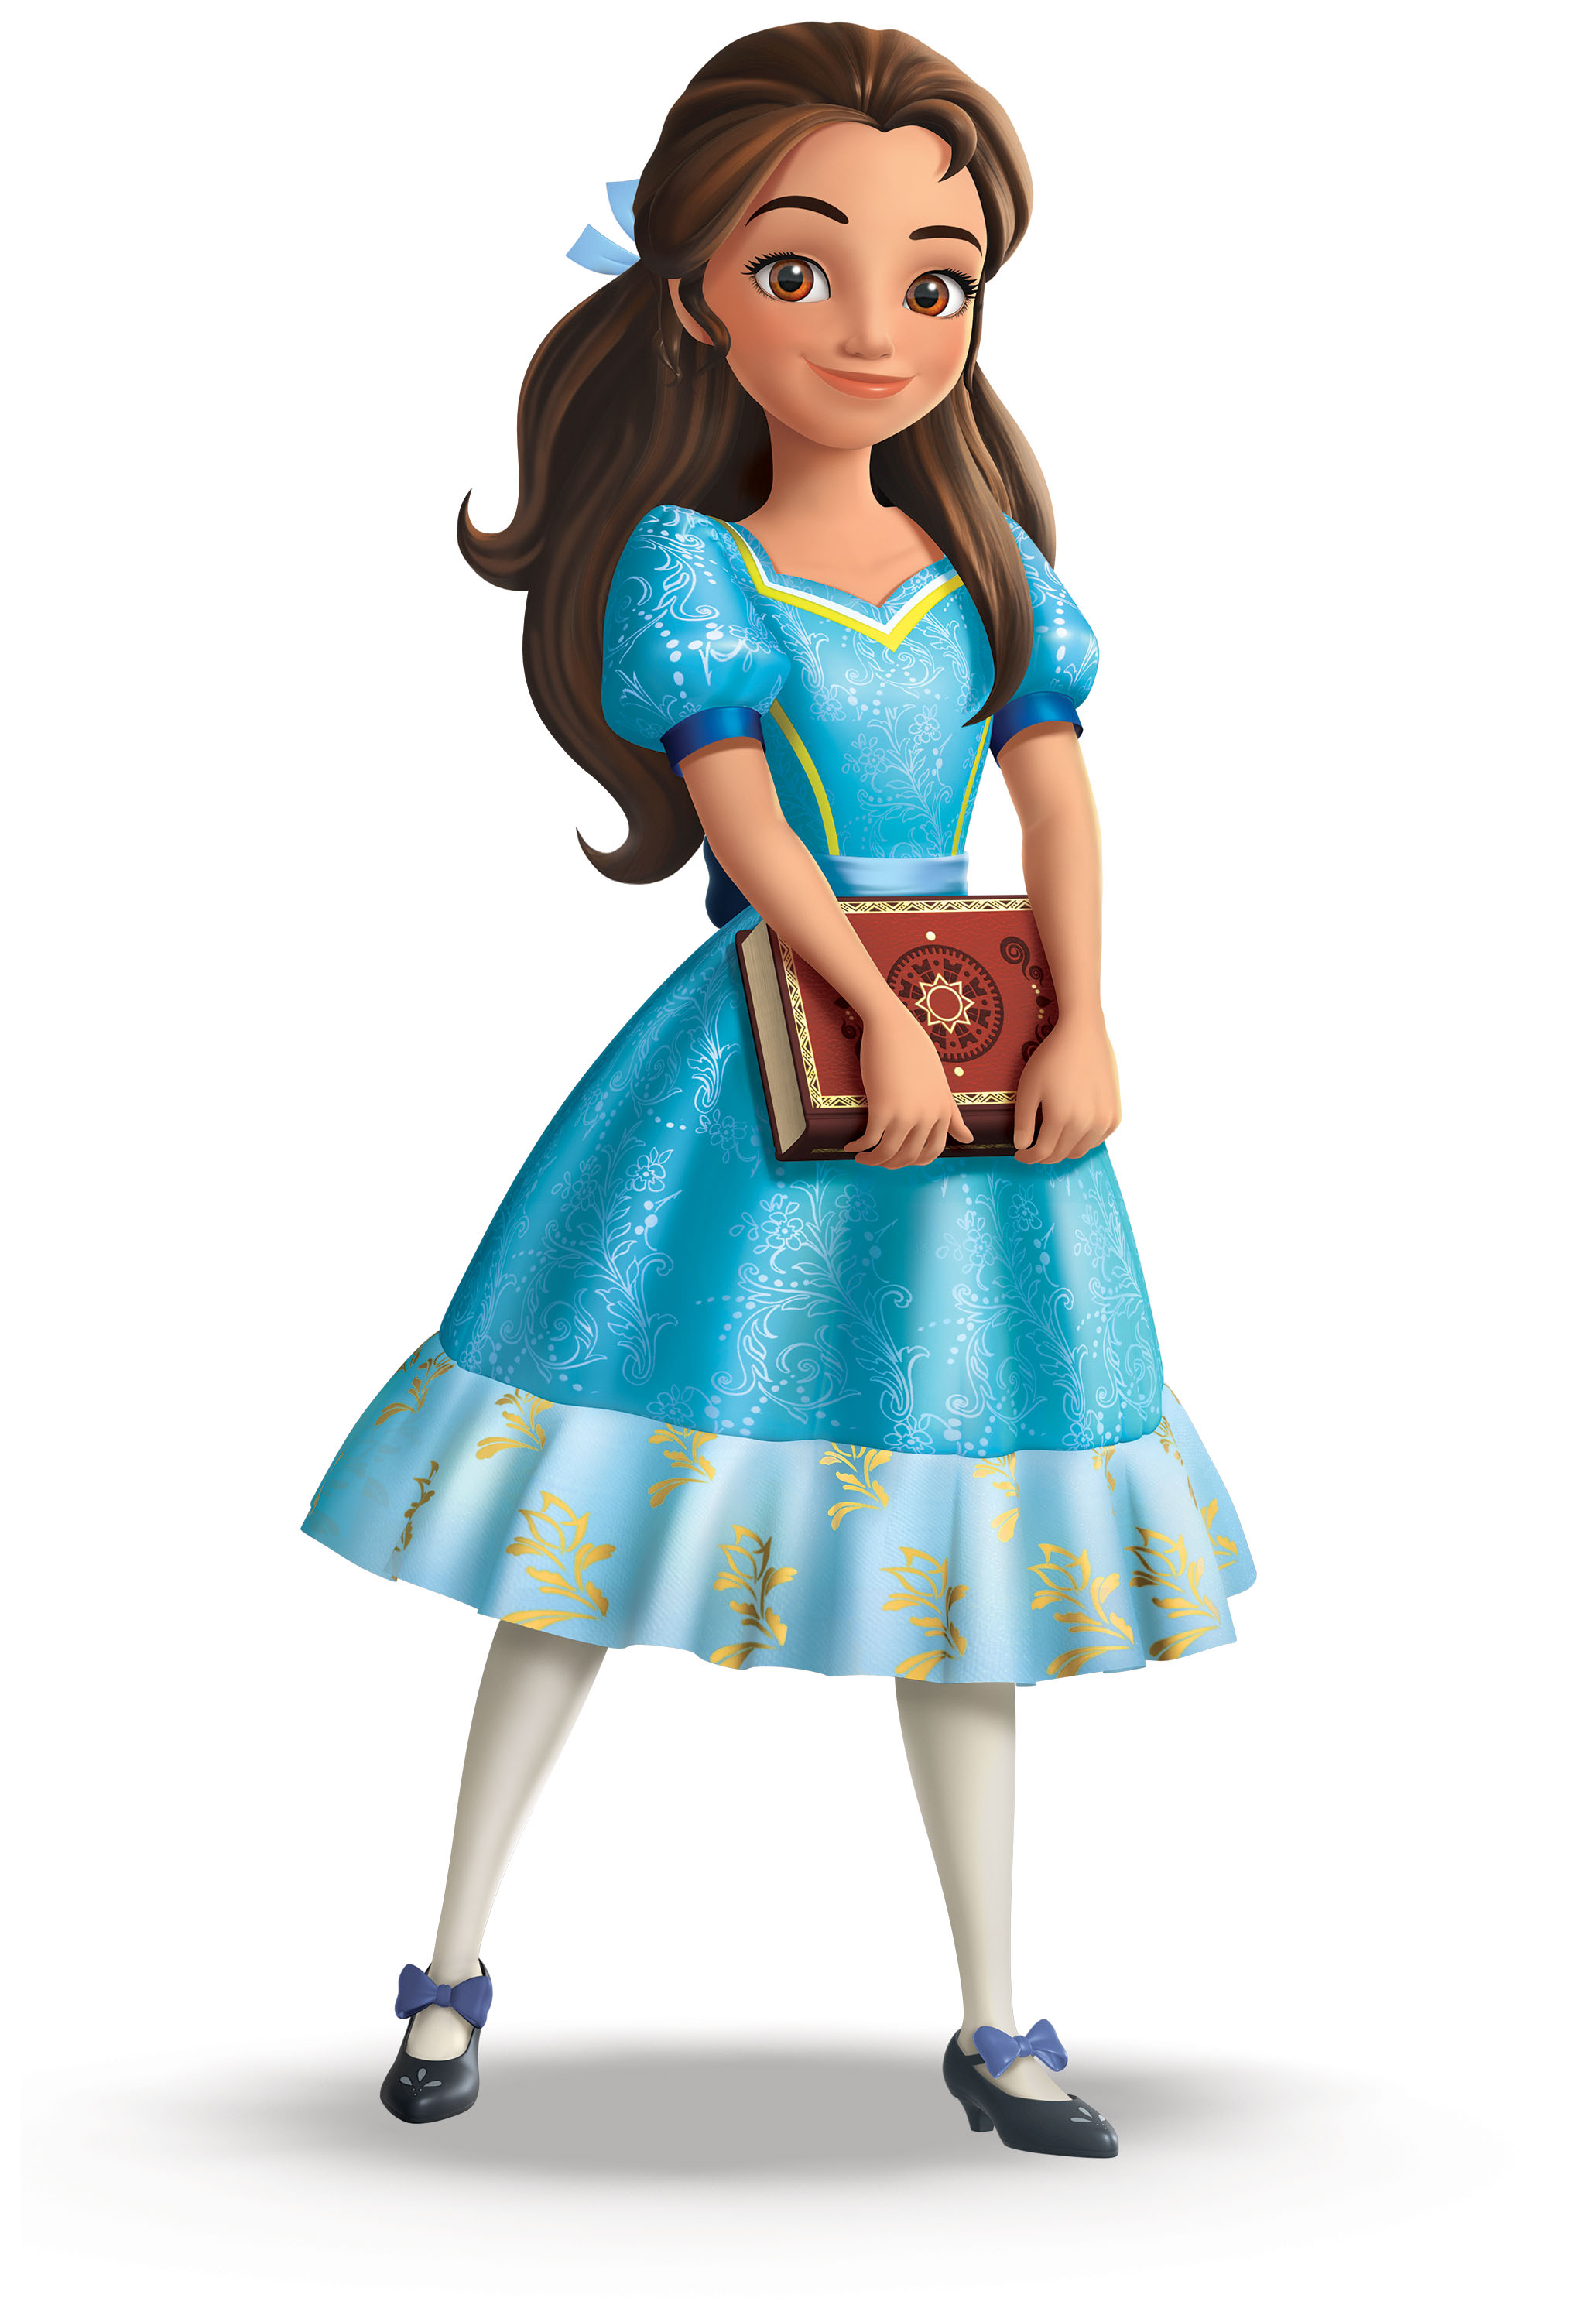 Princess Isabel | Disney Wiki | FANDOM powered by Wikia